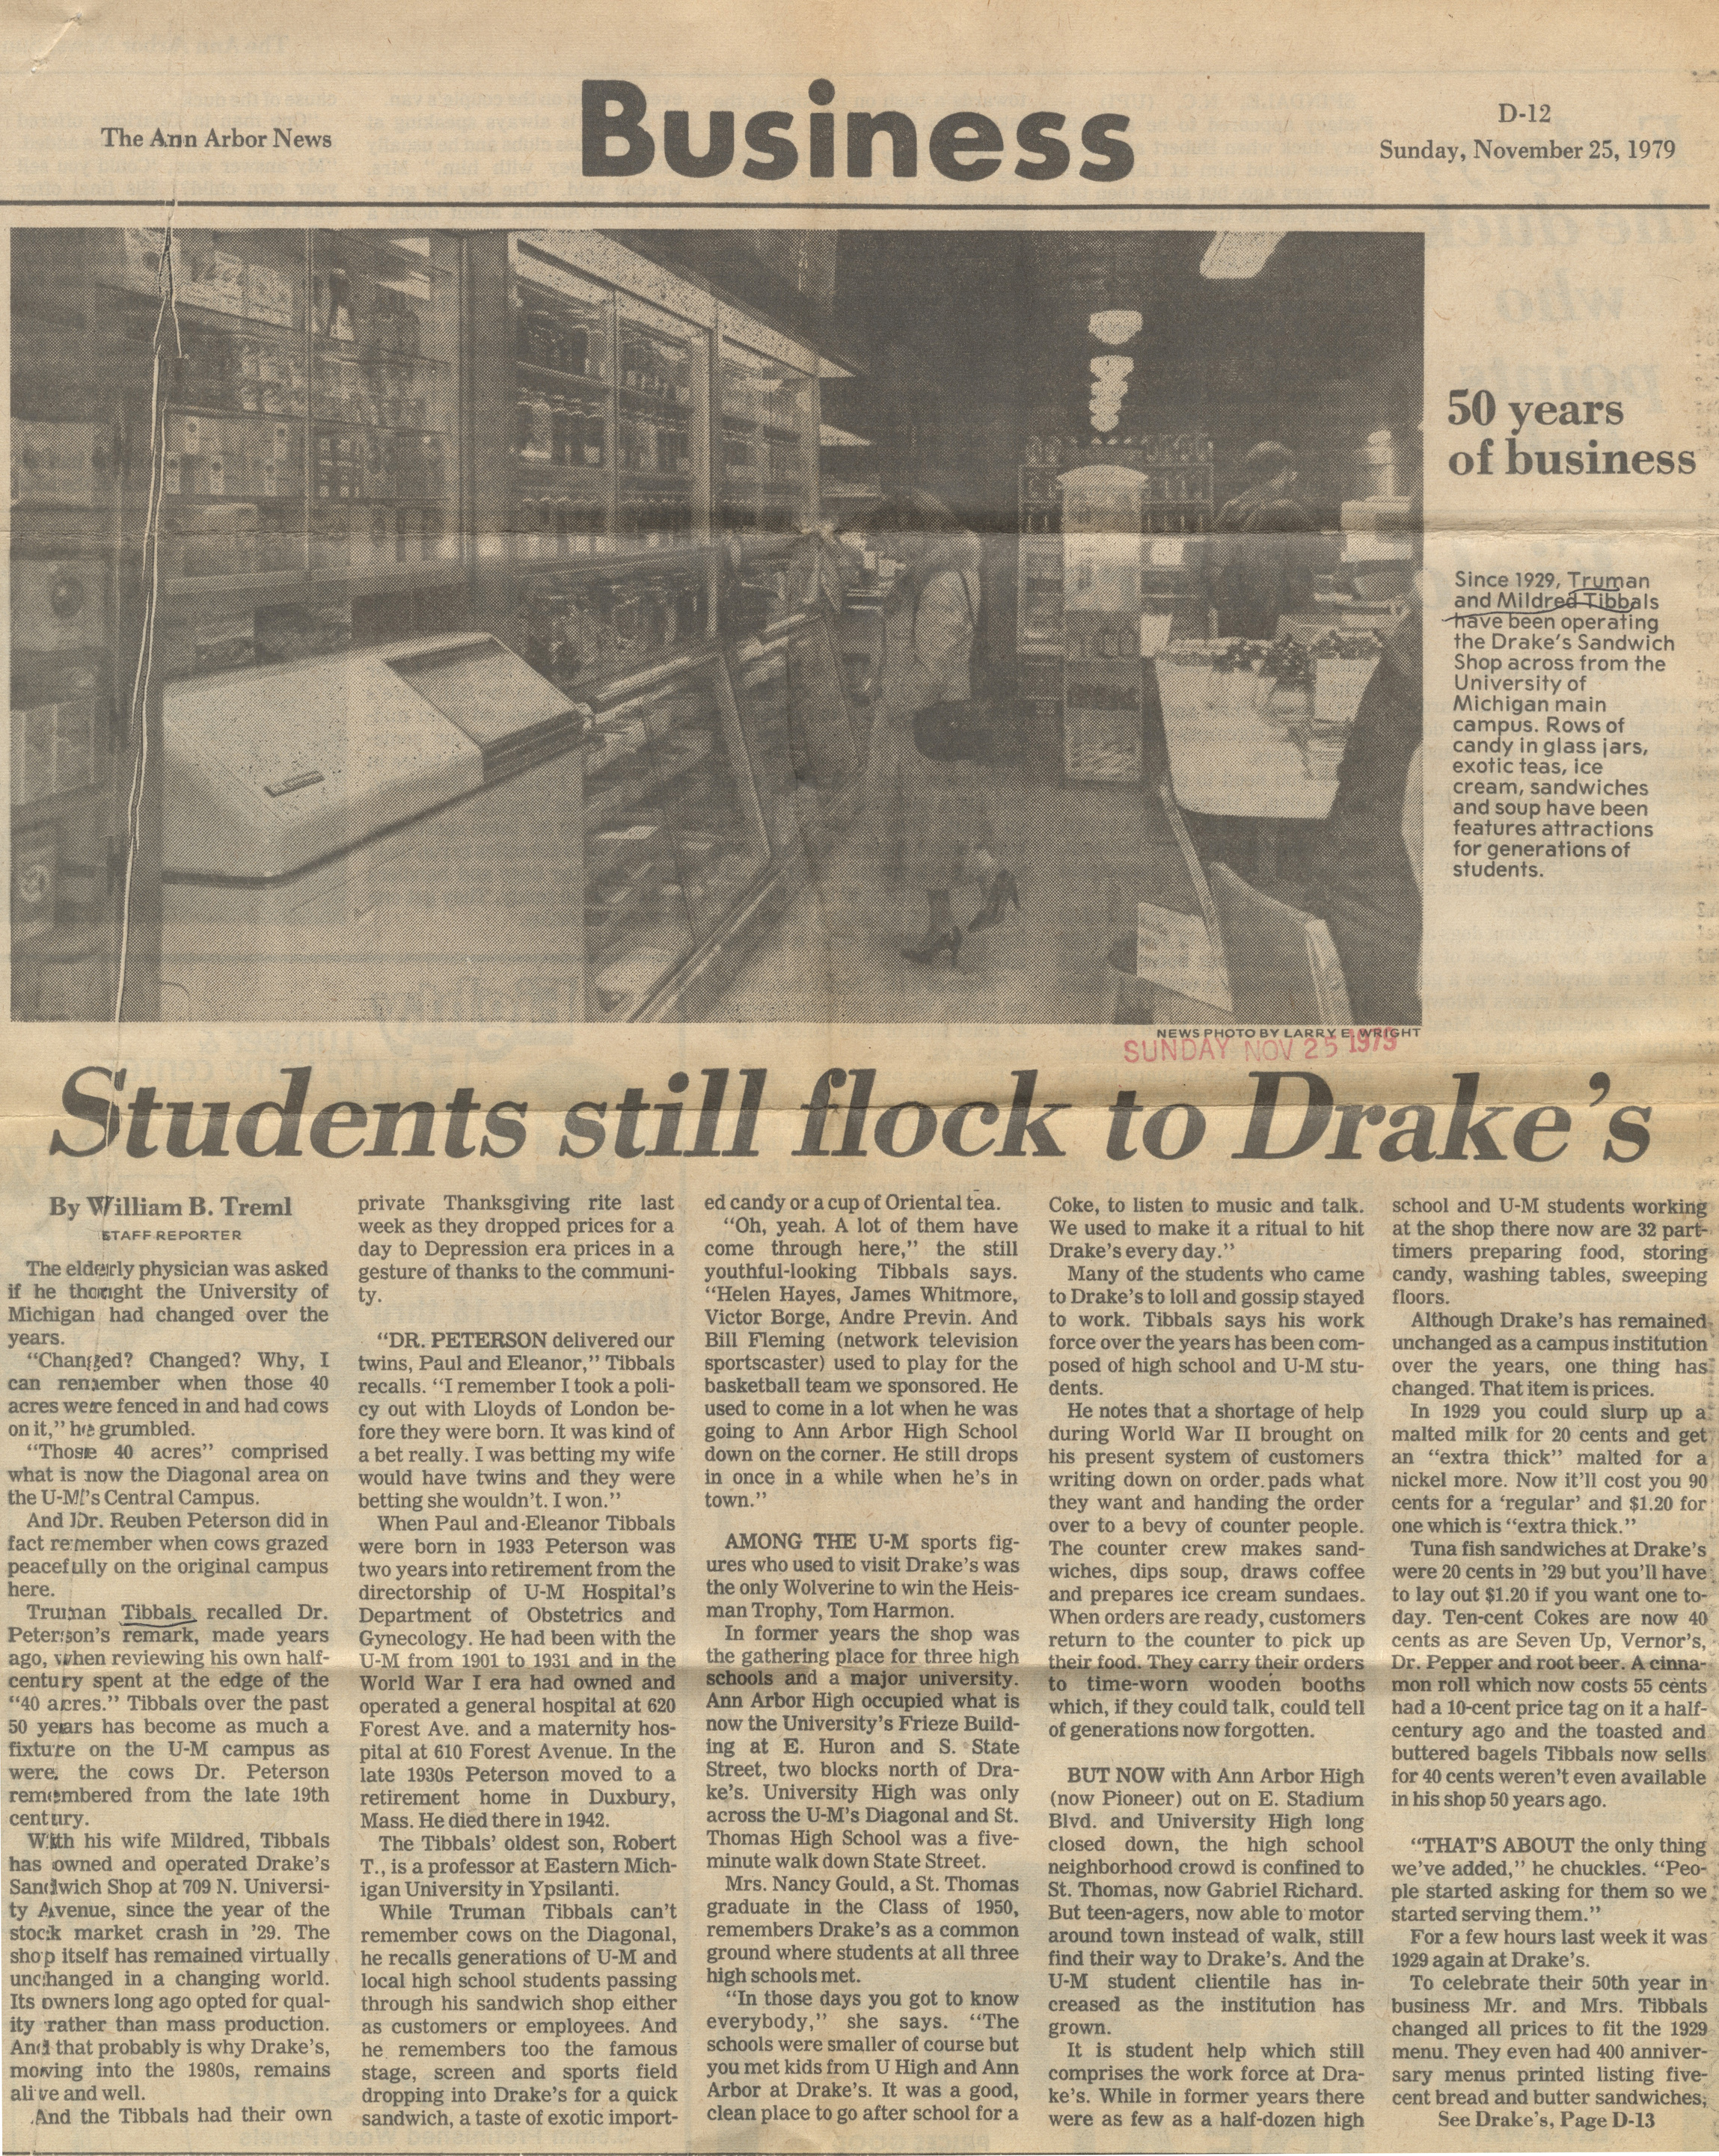 Students Still Flock To Drake's image